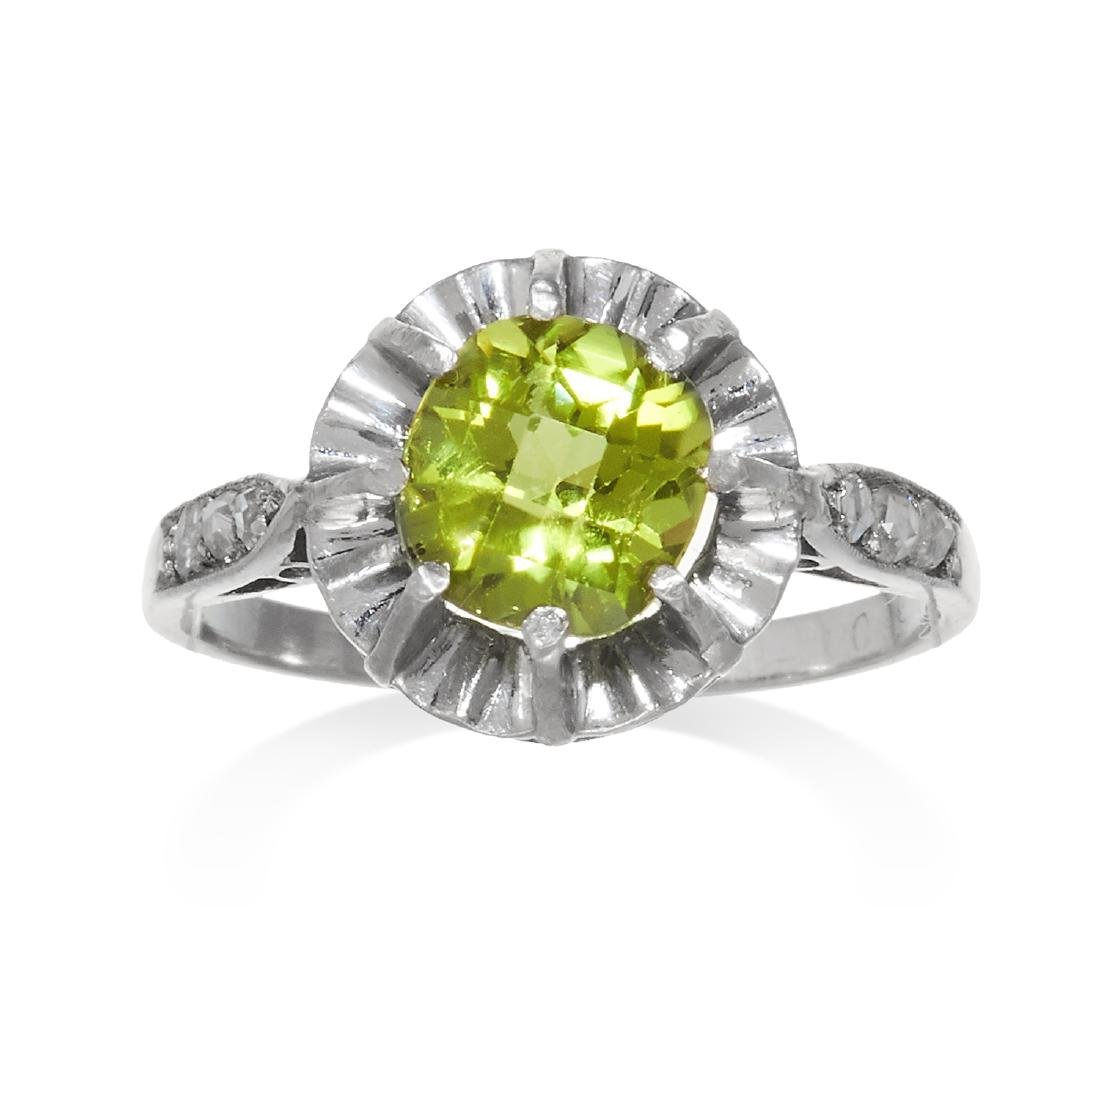 AN ART DECO PERIDOT AND DIAMOND RING in gold or